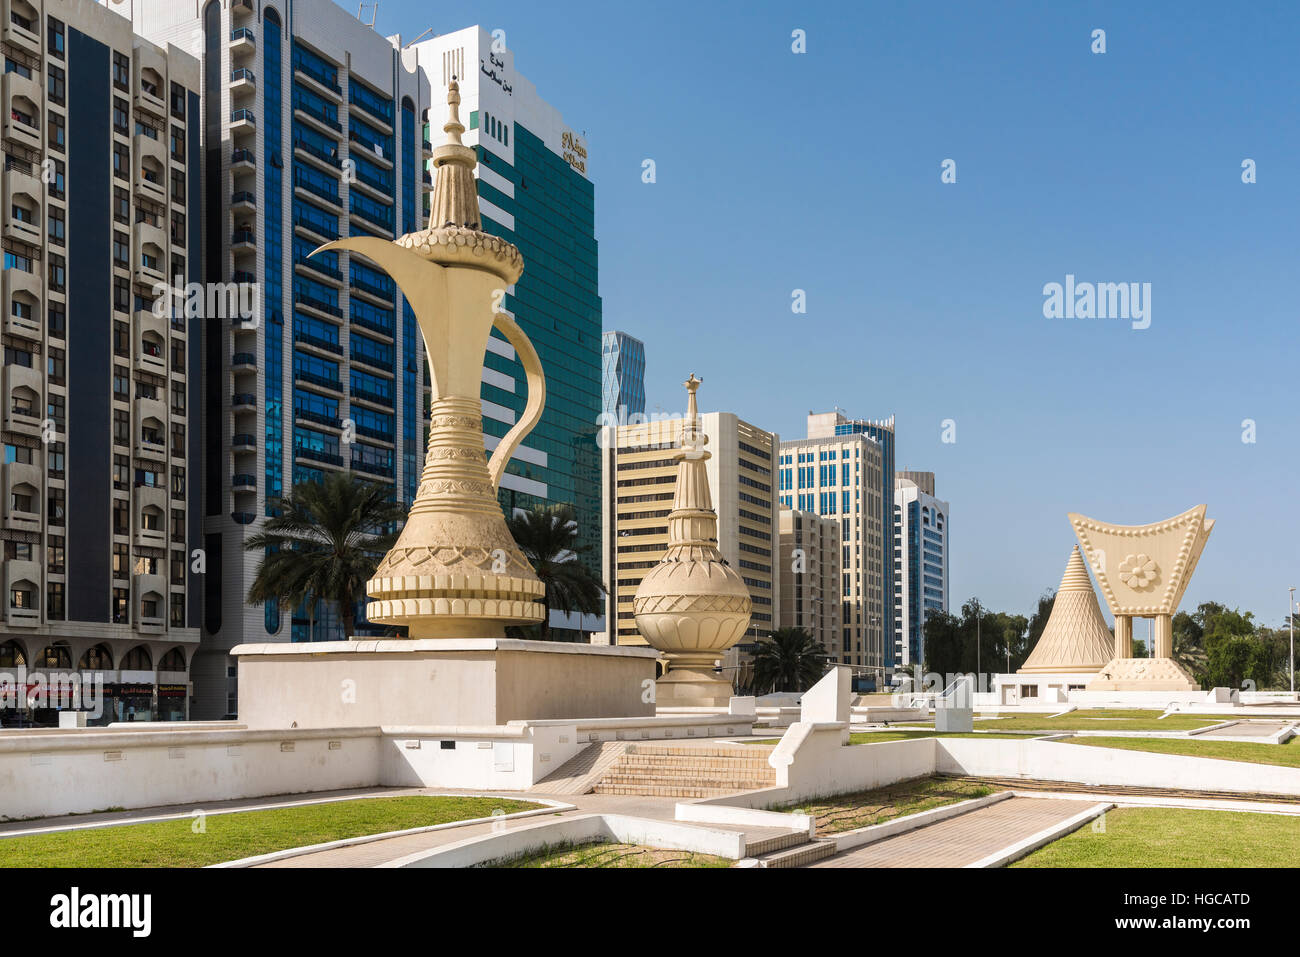 Arabic coffee pot monument at Culture Square, Abu Dhabi, United Arab Emirates - Stock Image